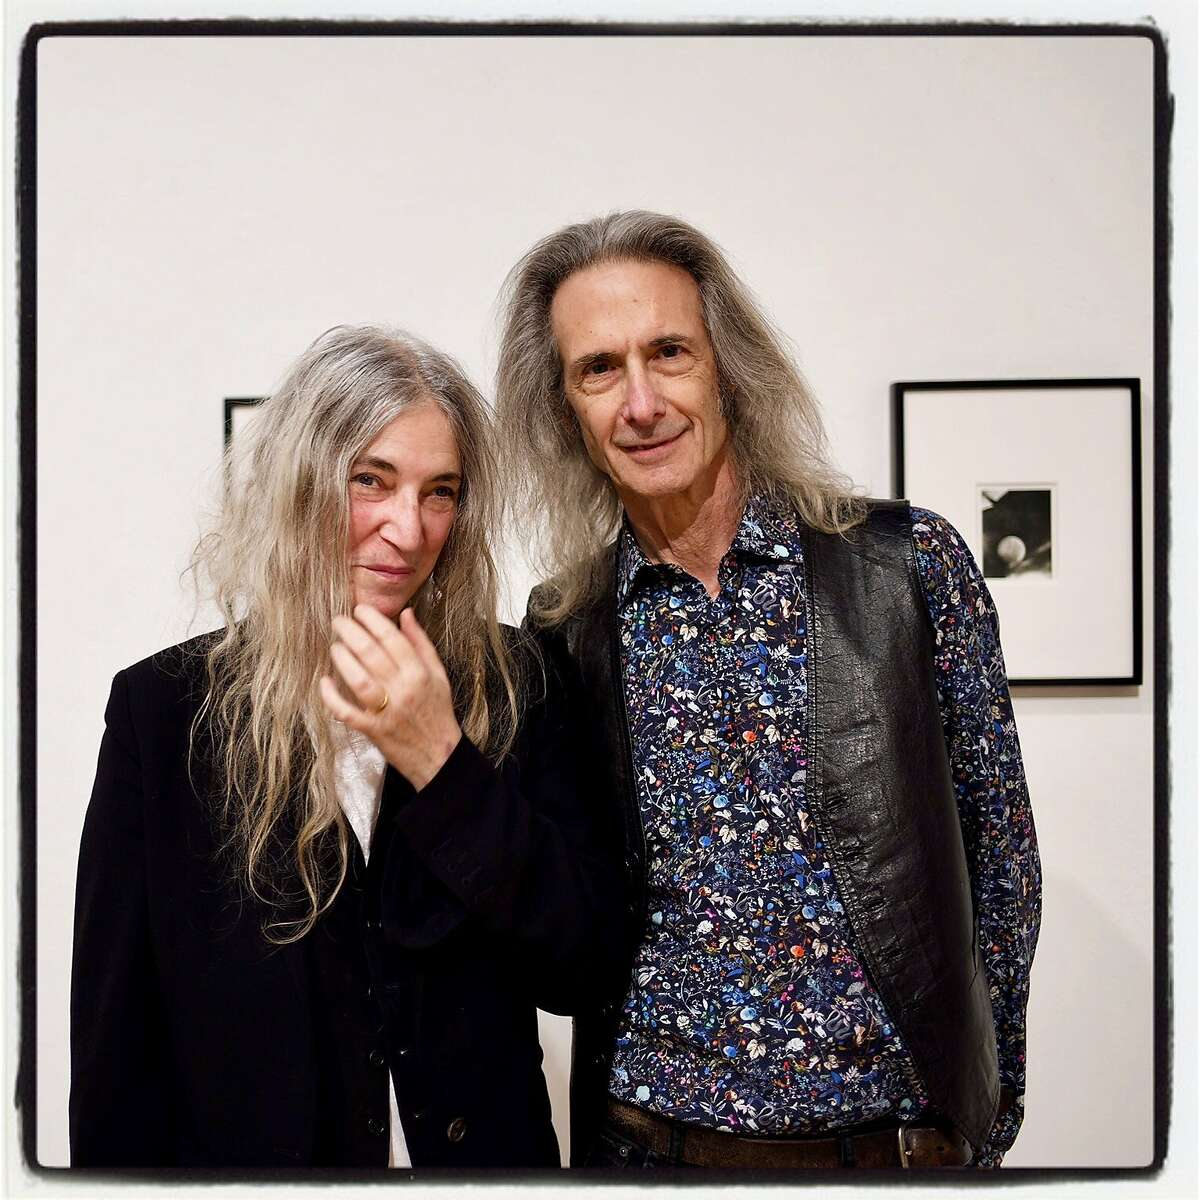 Artist Patti Smith and musician Lenny Kaye at SF Art Institute. Jan. 17, 2018.